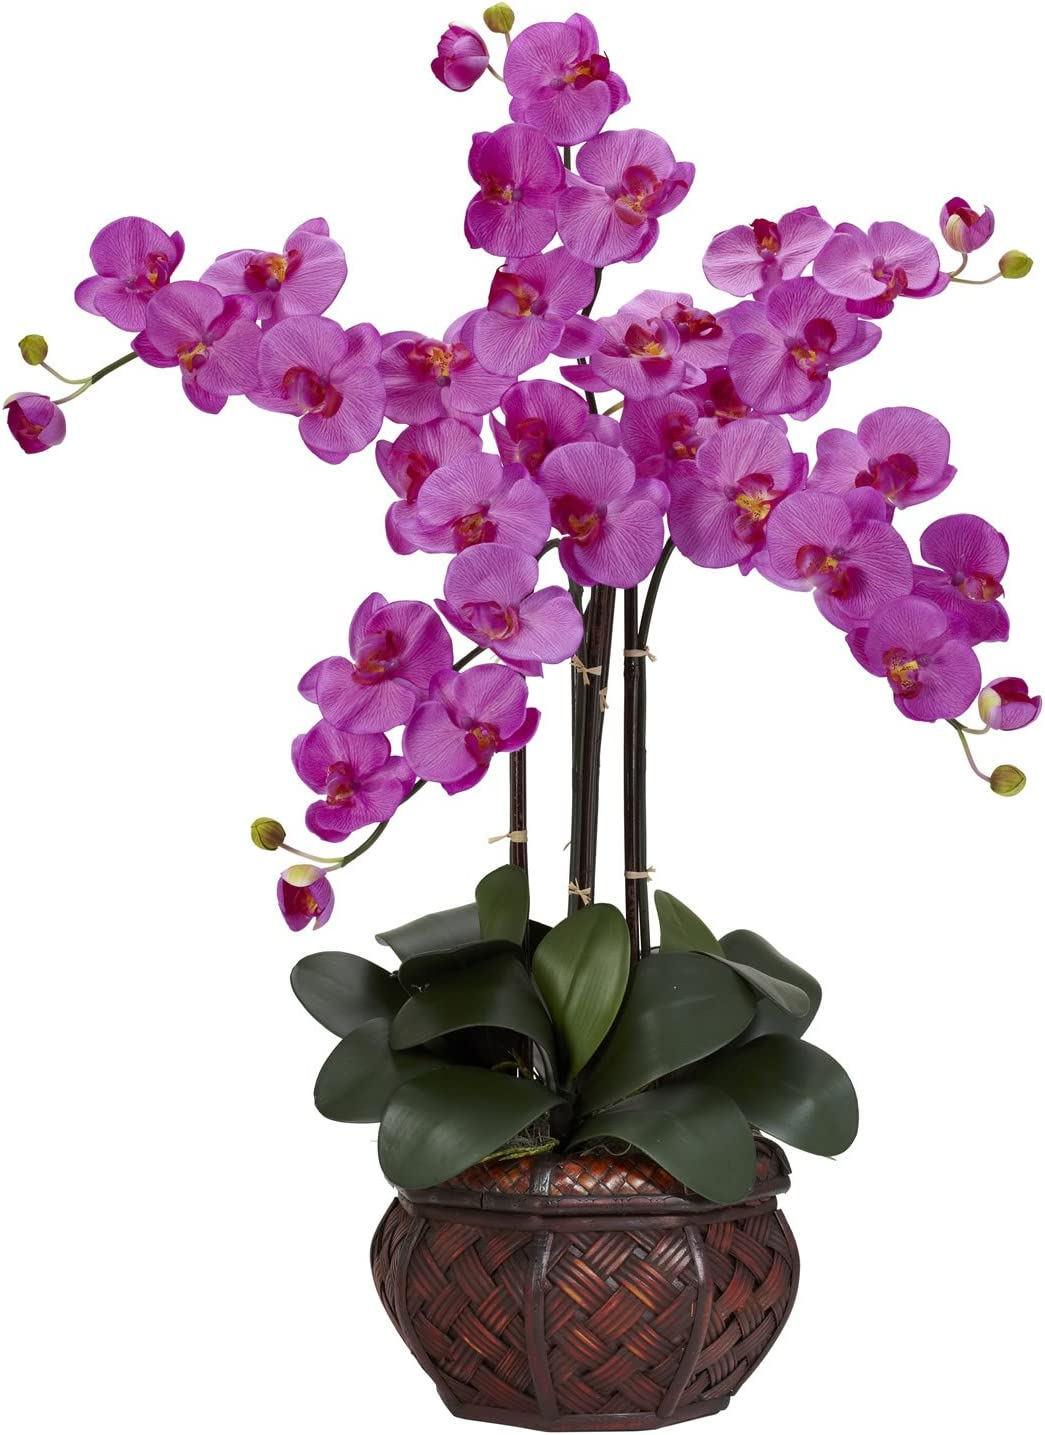 Silk Orchid Plant (Phalaenopsis) in a Decorative Vase